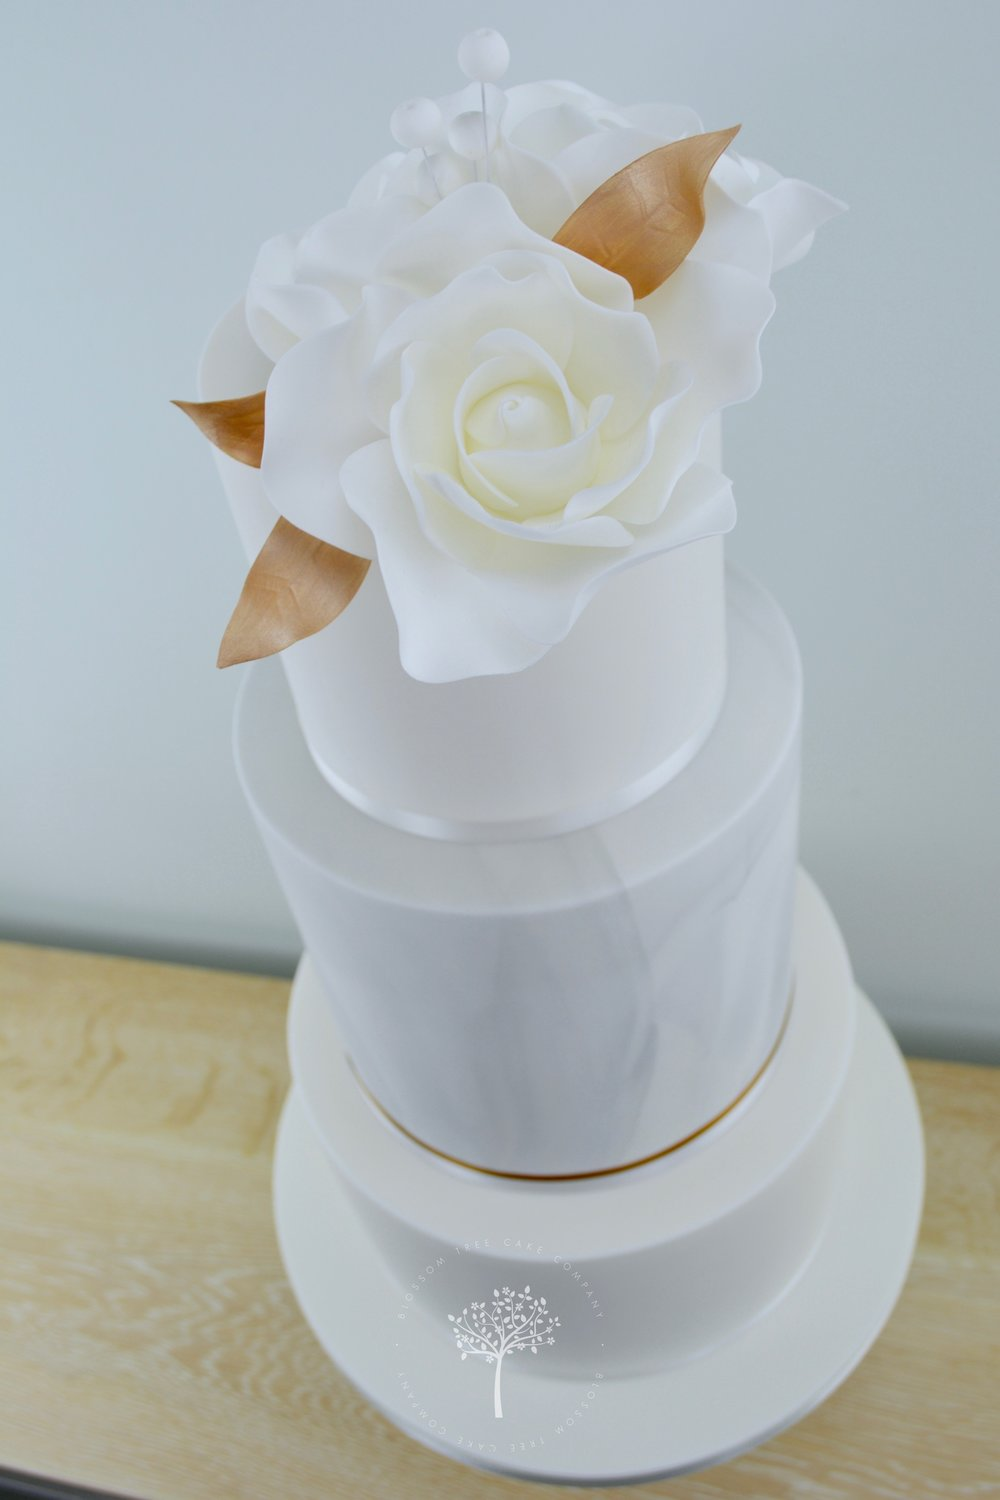 Marble and White Roses wedding cake by Blossom Tree Cake Company Harrogate North Yorkshire - angle.jpg